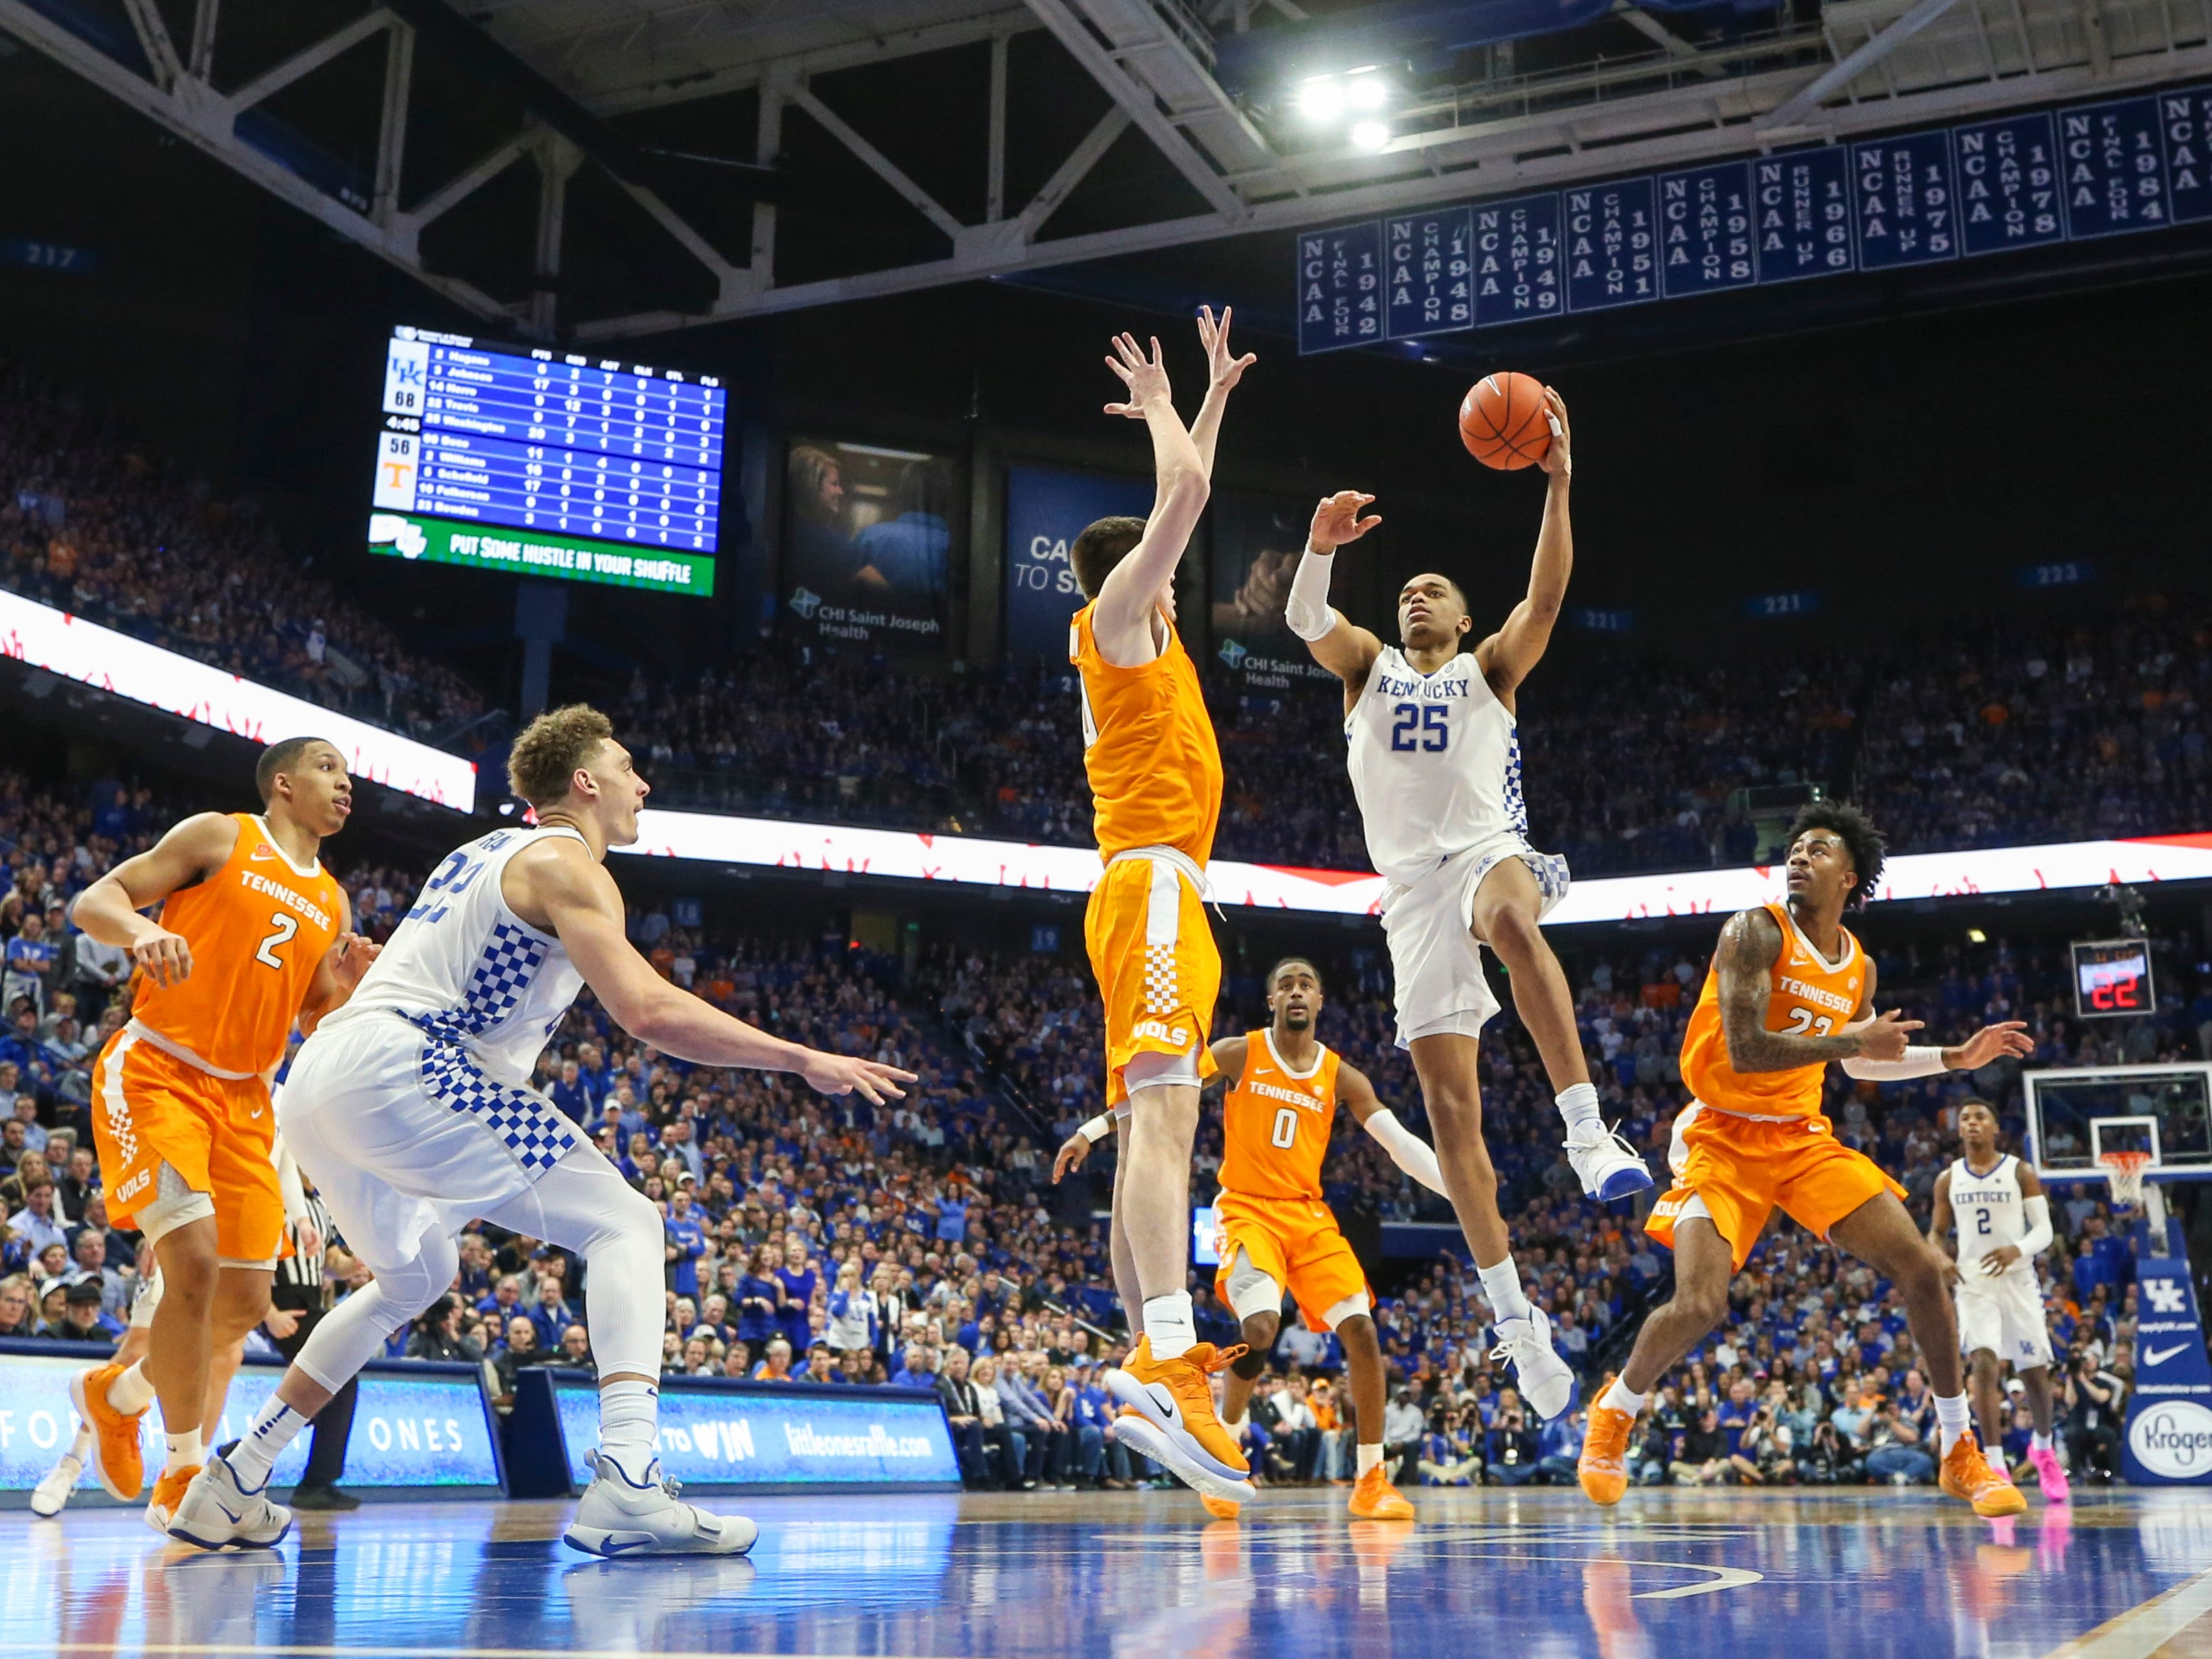 Kentucky's PJ Washington Jr scored 23 points in the Wildcats' win over No. 1 Tennessee 86-69 Saturday night. Feb. 16, 2019